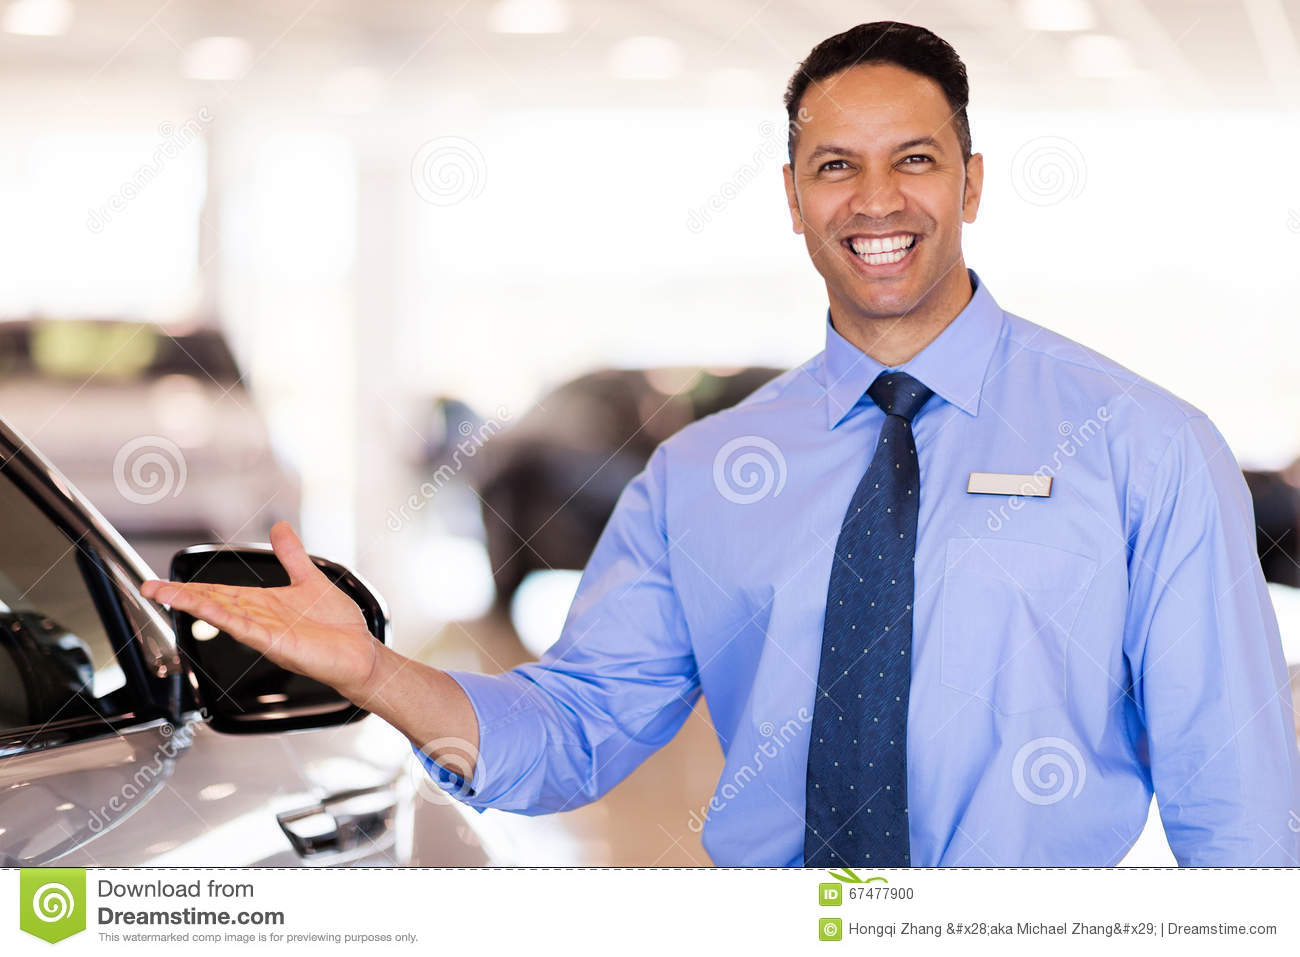 How To Be A Good Car Salesman >> Car Salesman Presenting Stock Photo Image Of Portrait 67477900